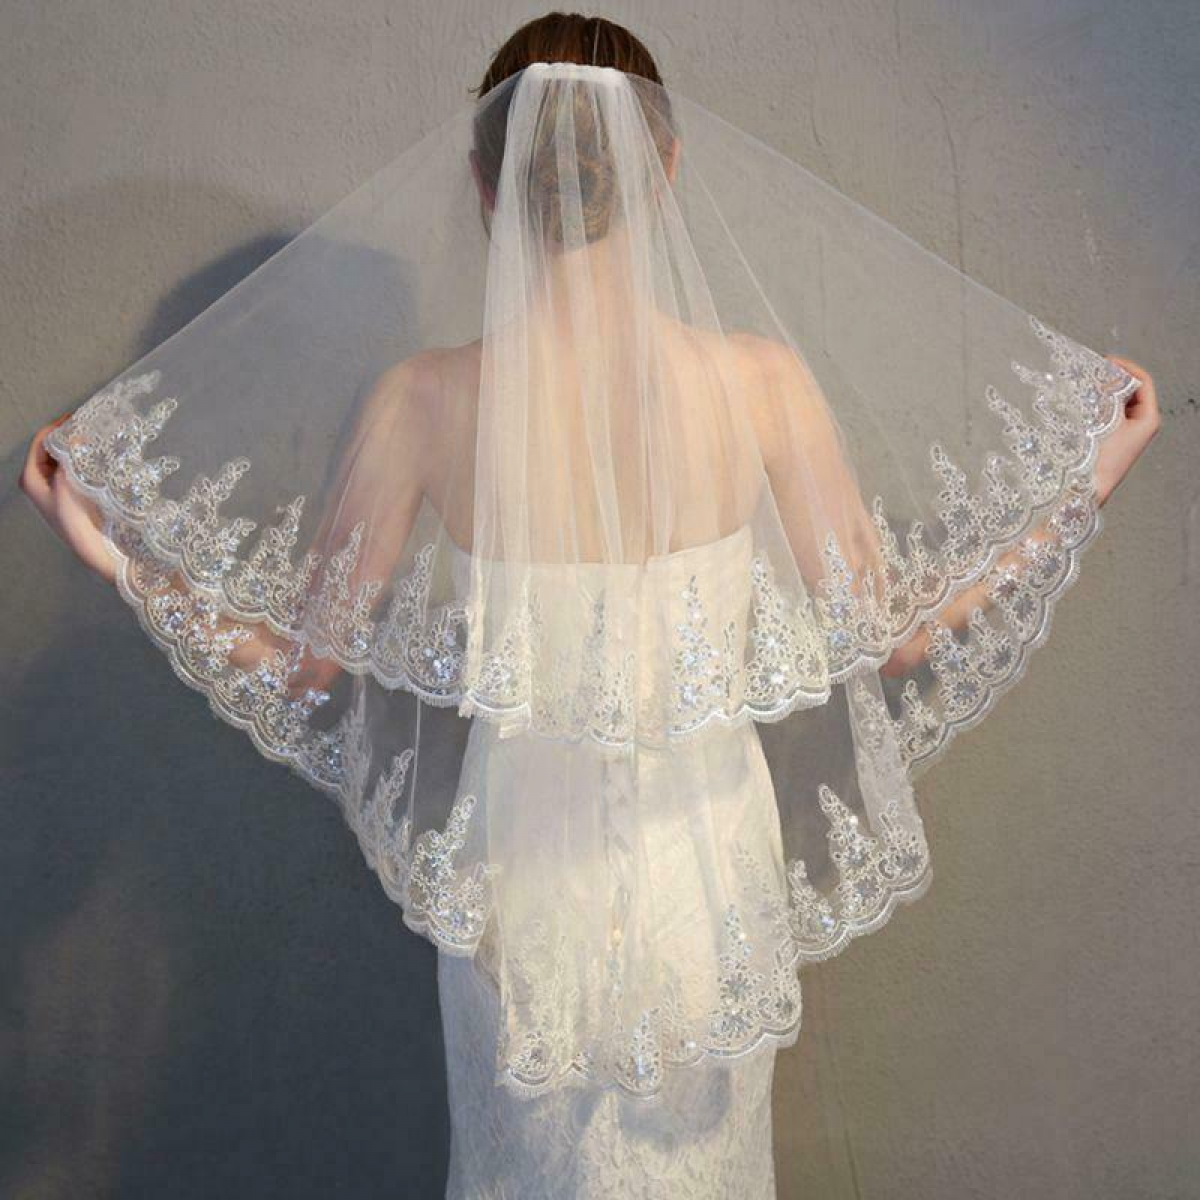 2 Tier Wedding Veil with Comb Scalloped Lace Trim Glitter Sequins Embellished